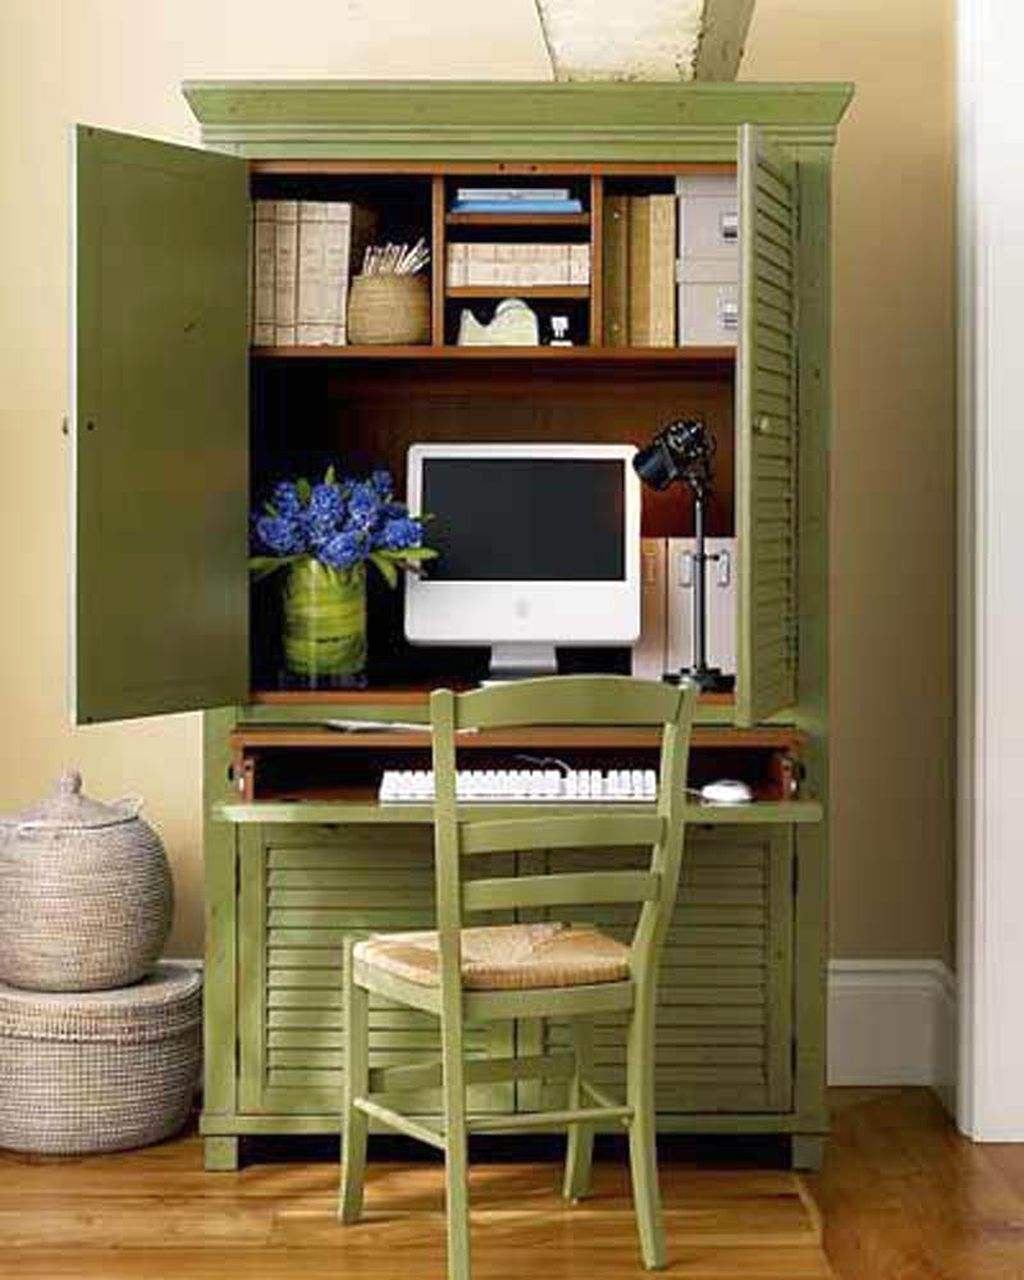 Small Home Office Room: Green Cupboard Home Office Design Ideas For Small Spaces